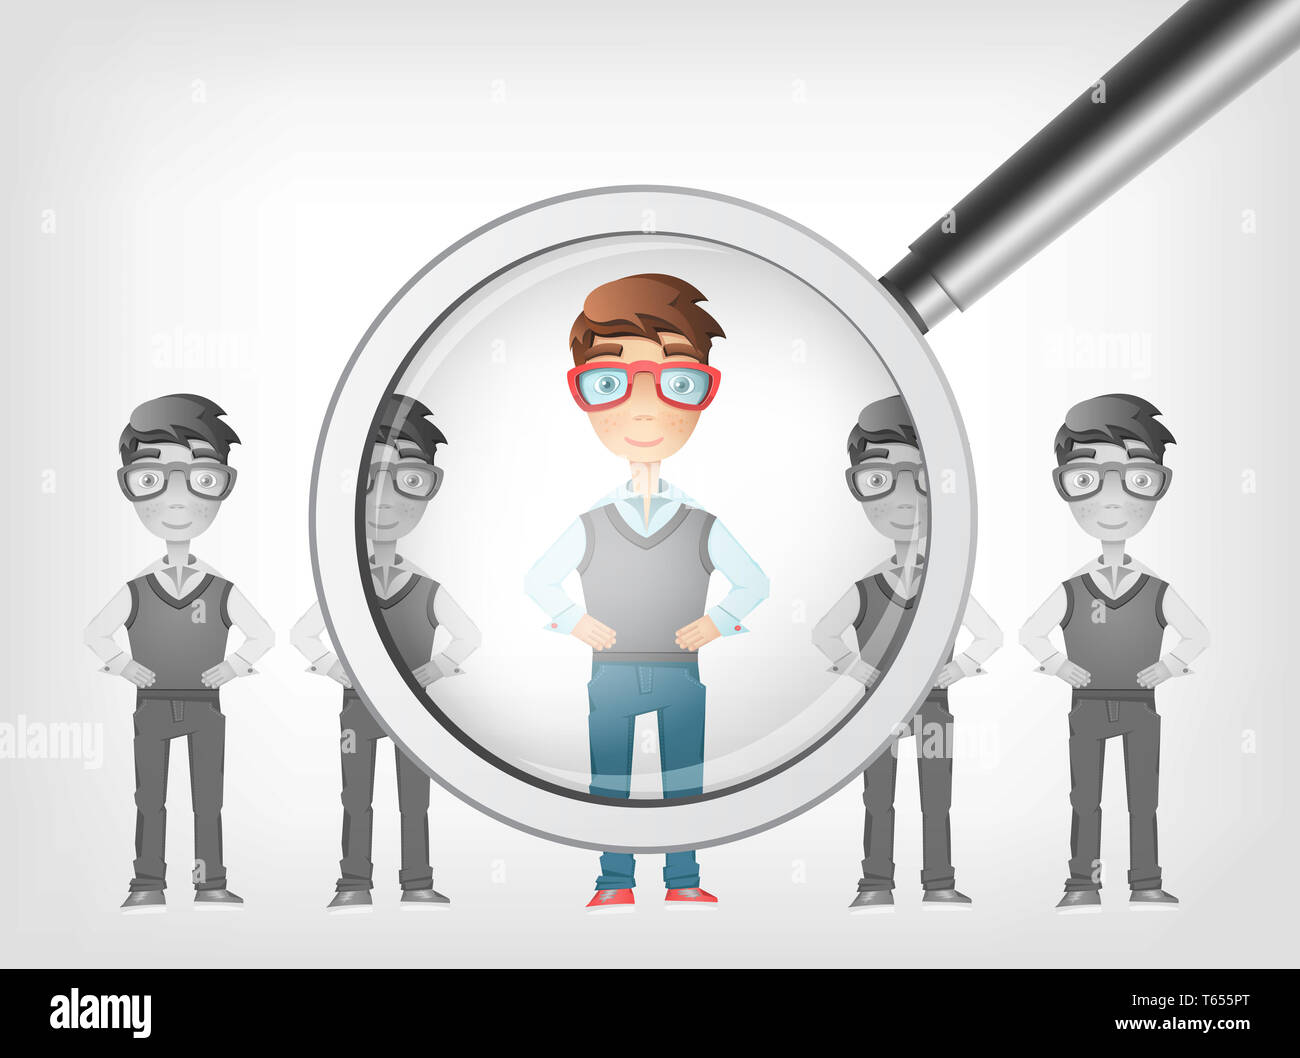 Find Human. Vector EPS 10. - Stock Image